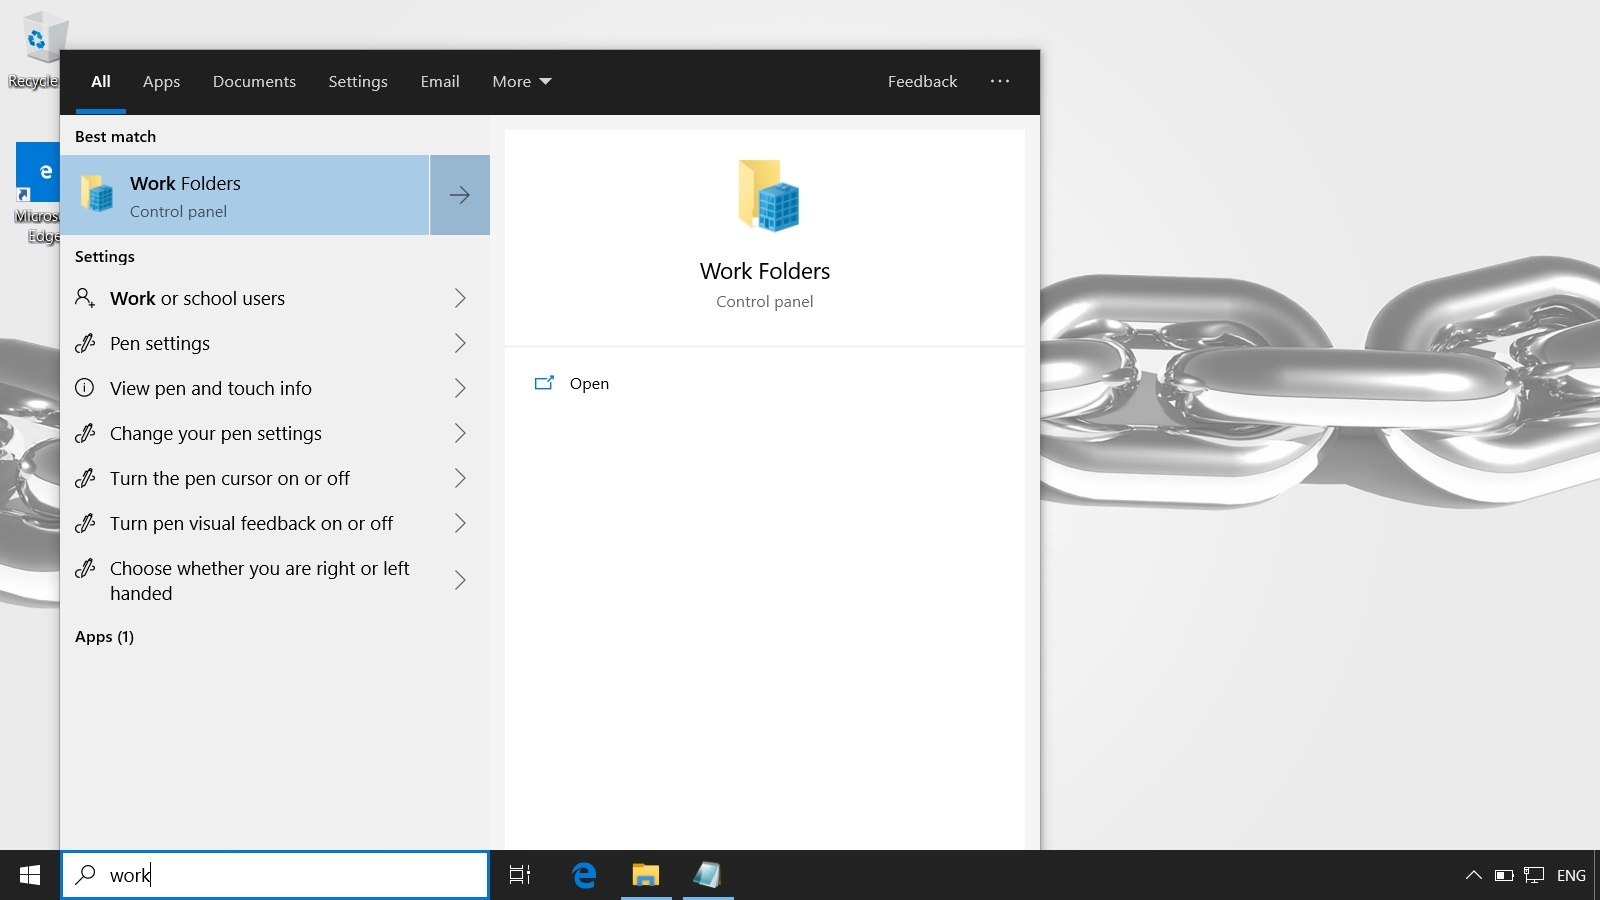 How to configure Remote Access for Work Folders with the